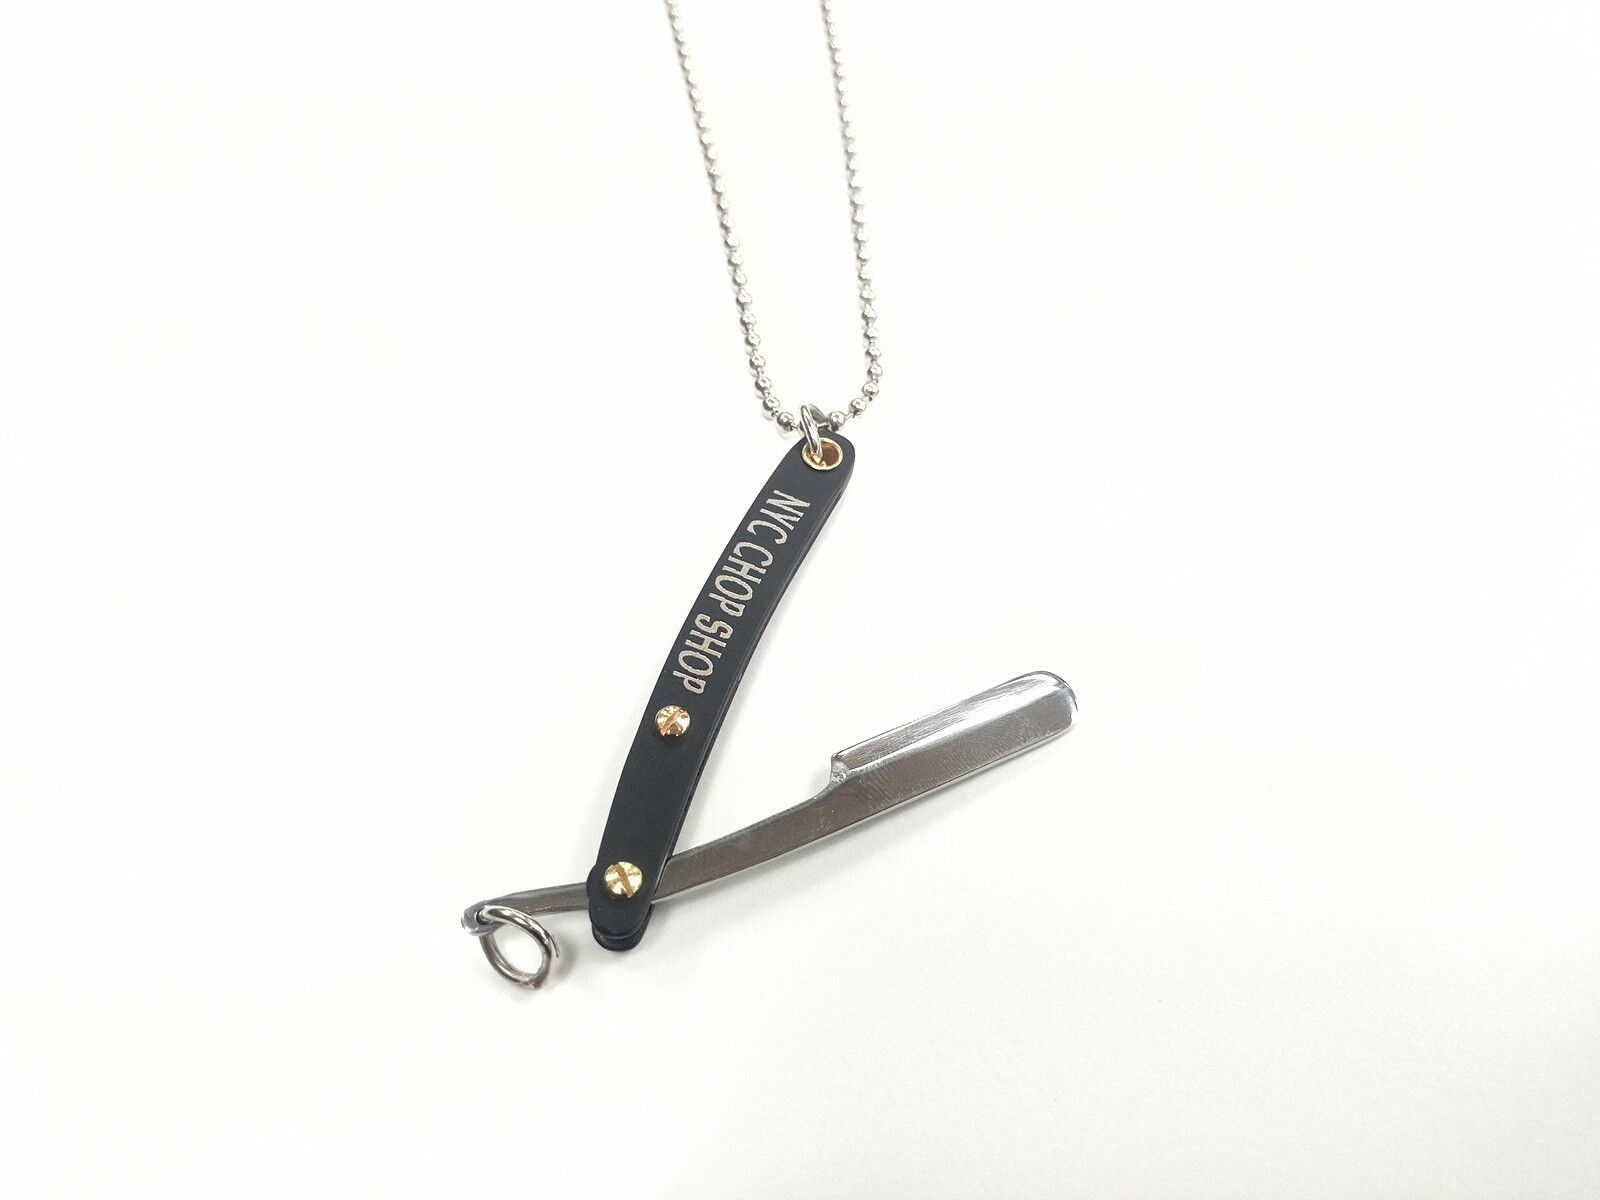 NYC Chop Shop Necklace (Limited Edition Necklace)